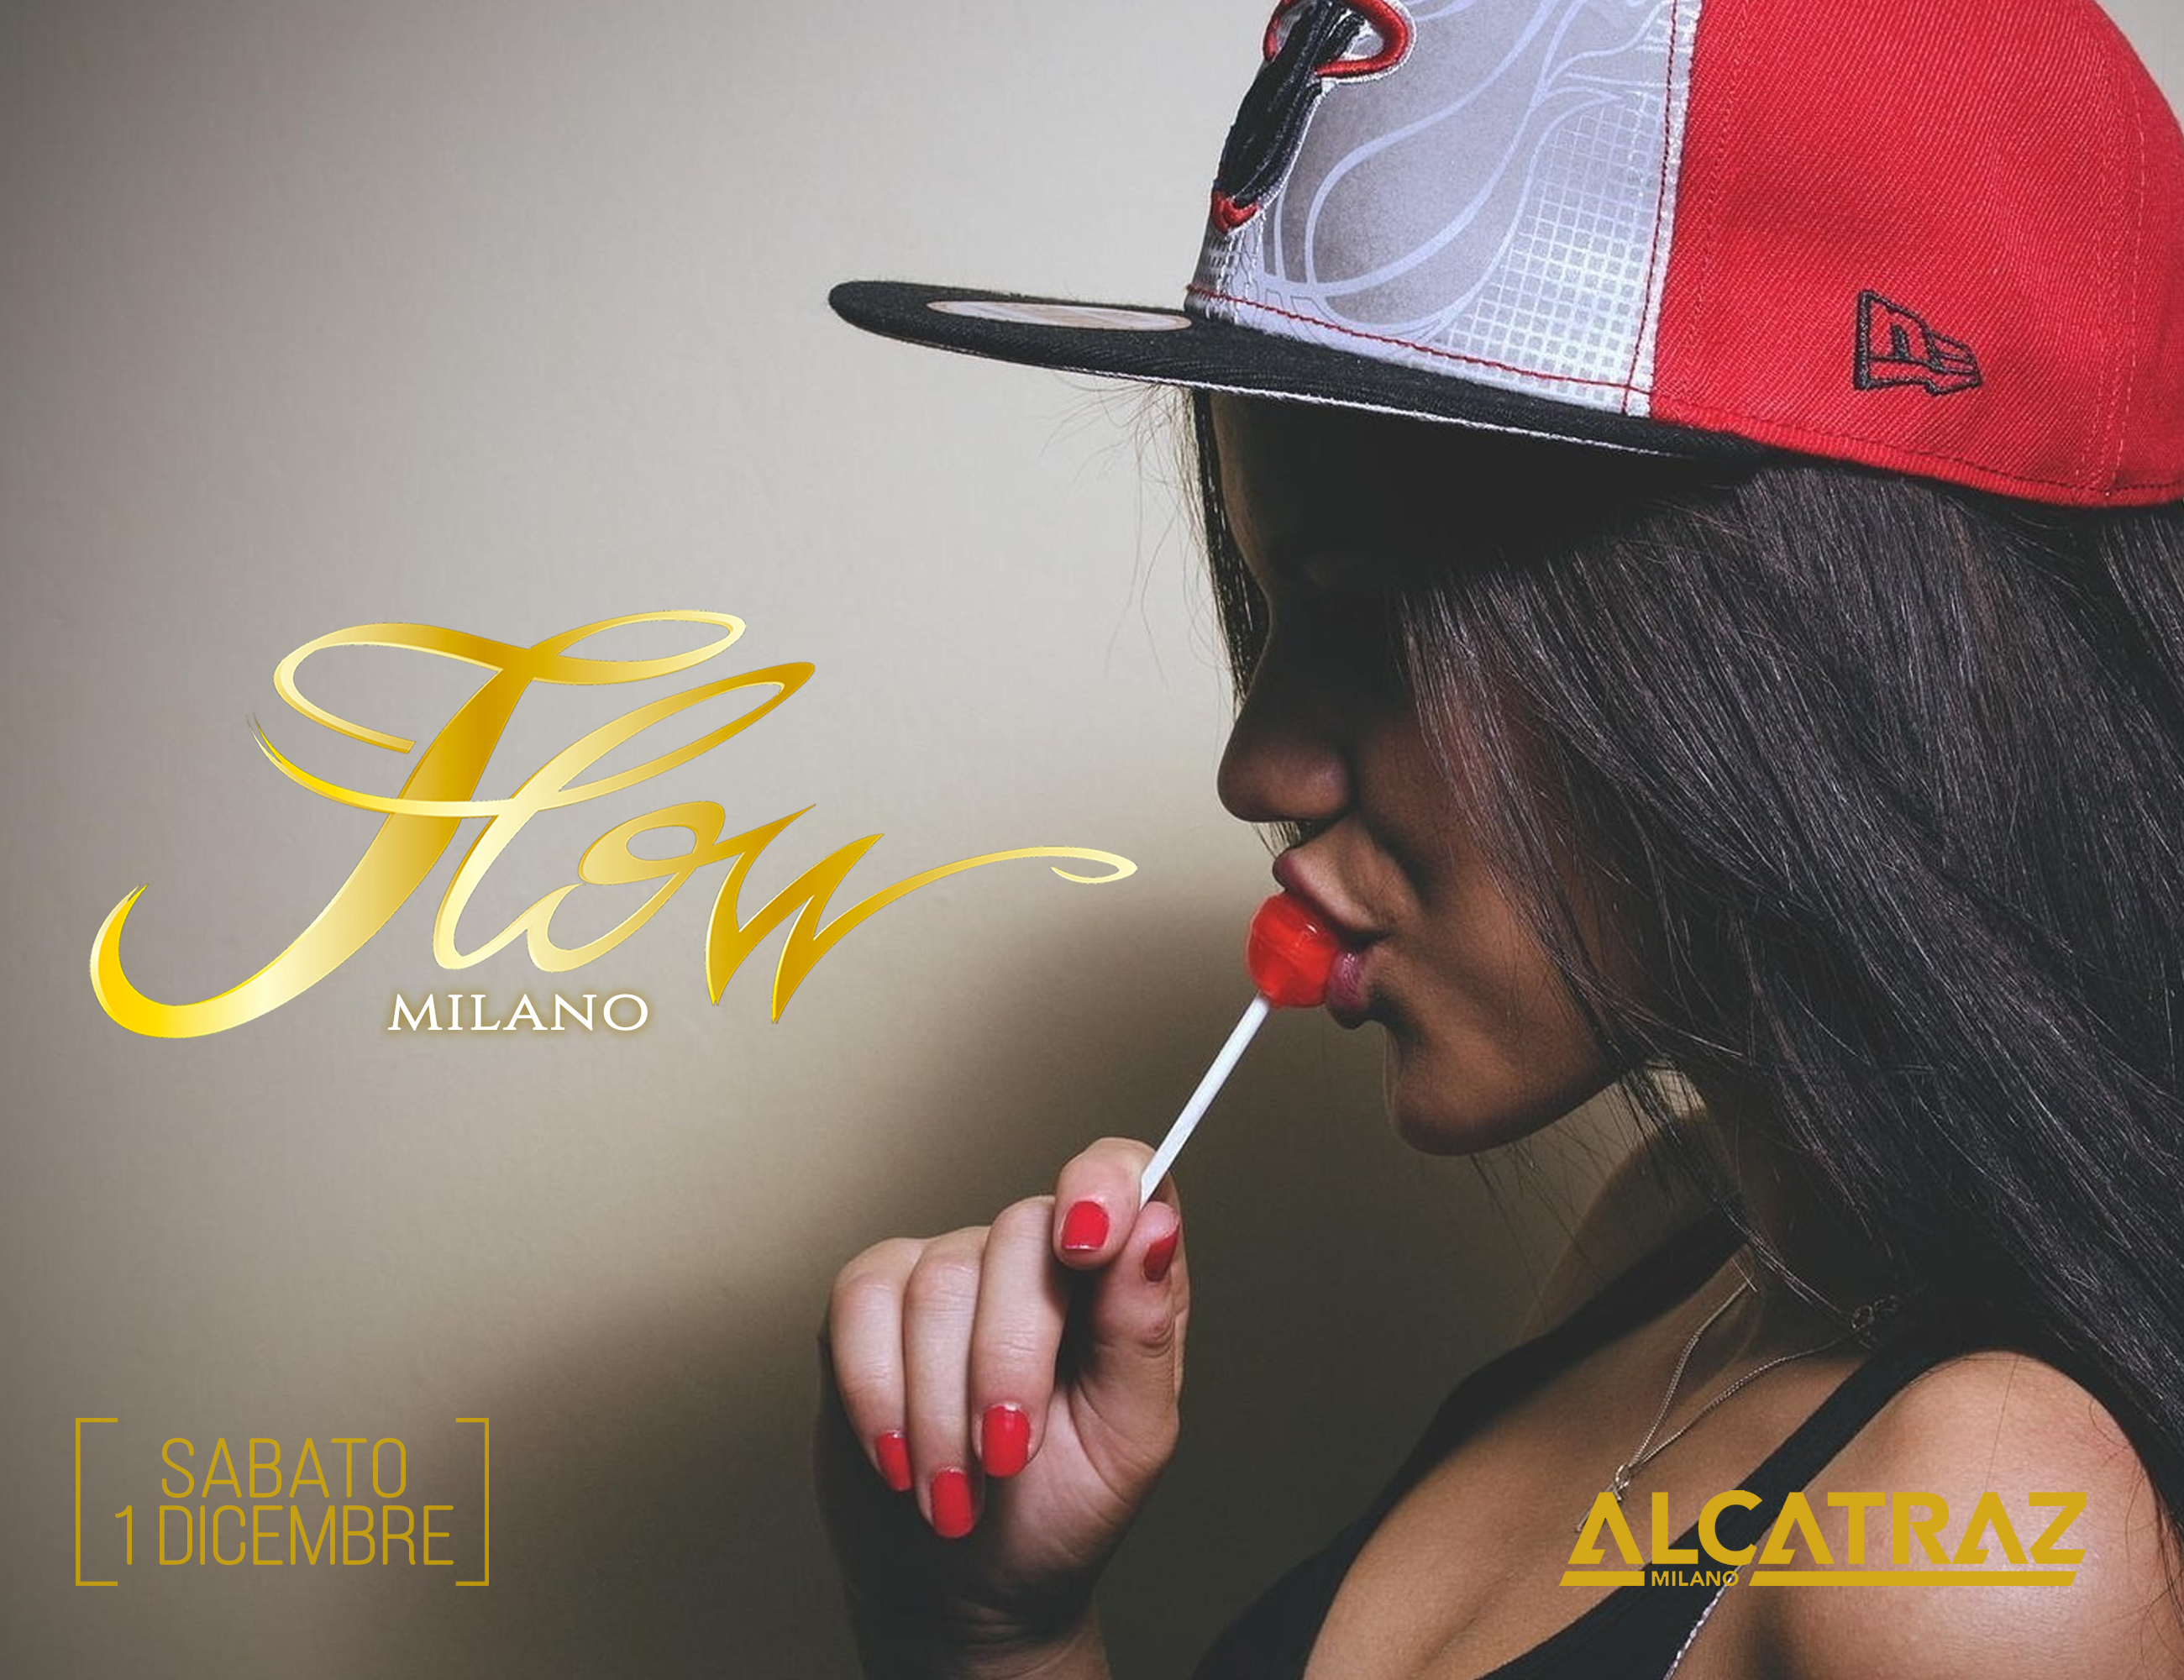 flow_milano_website